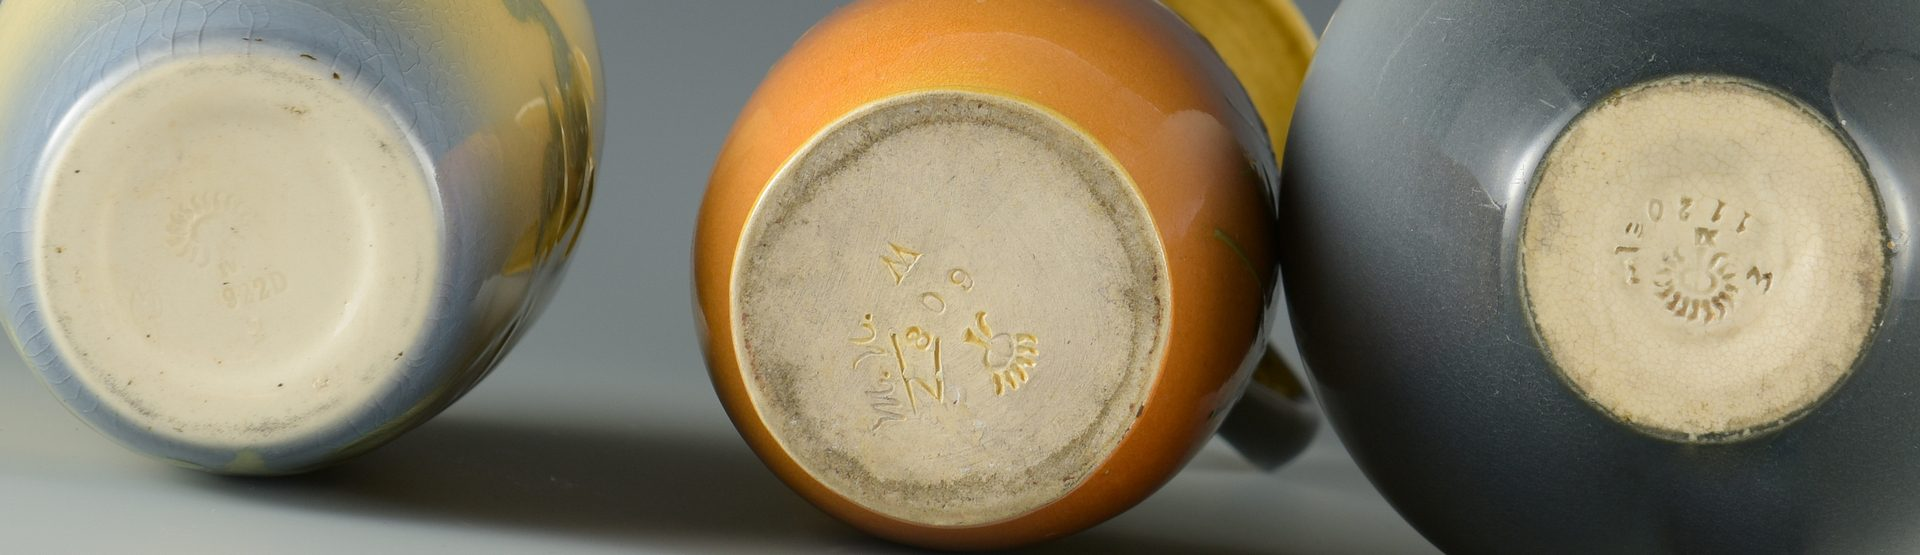 Lot 411: 3 Items Rookwood Pottery w/ Floral Designs